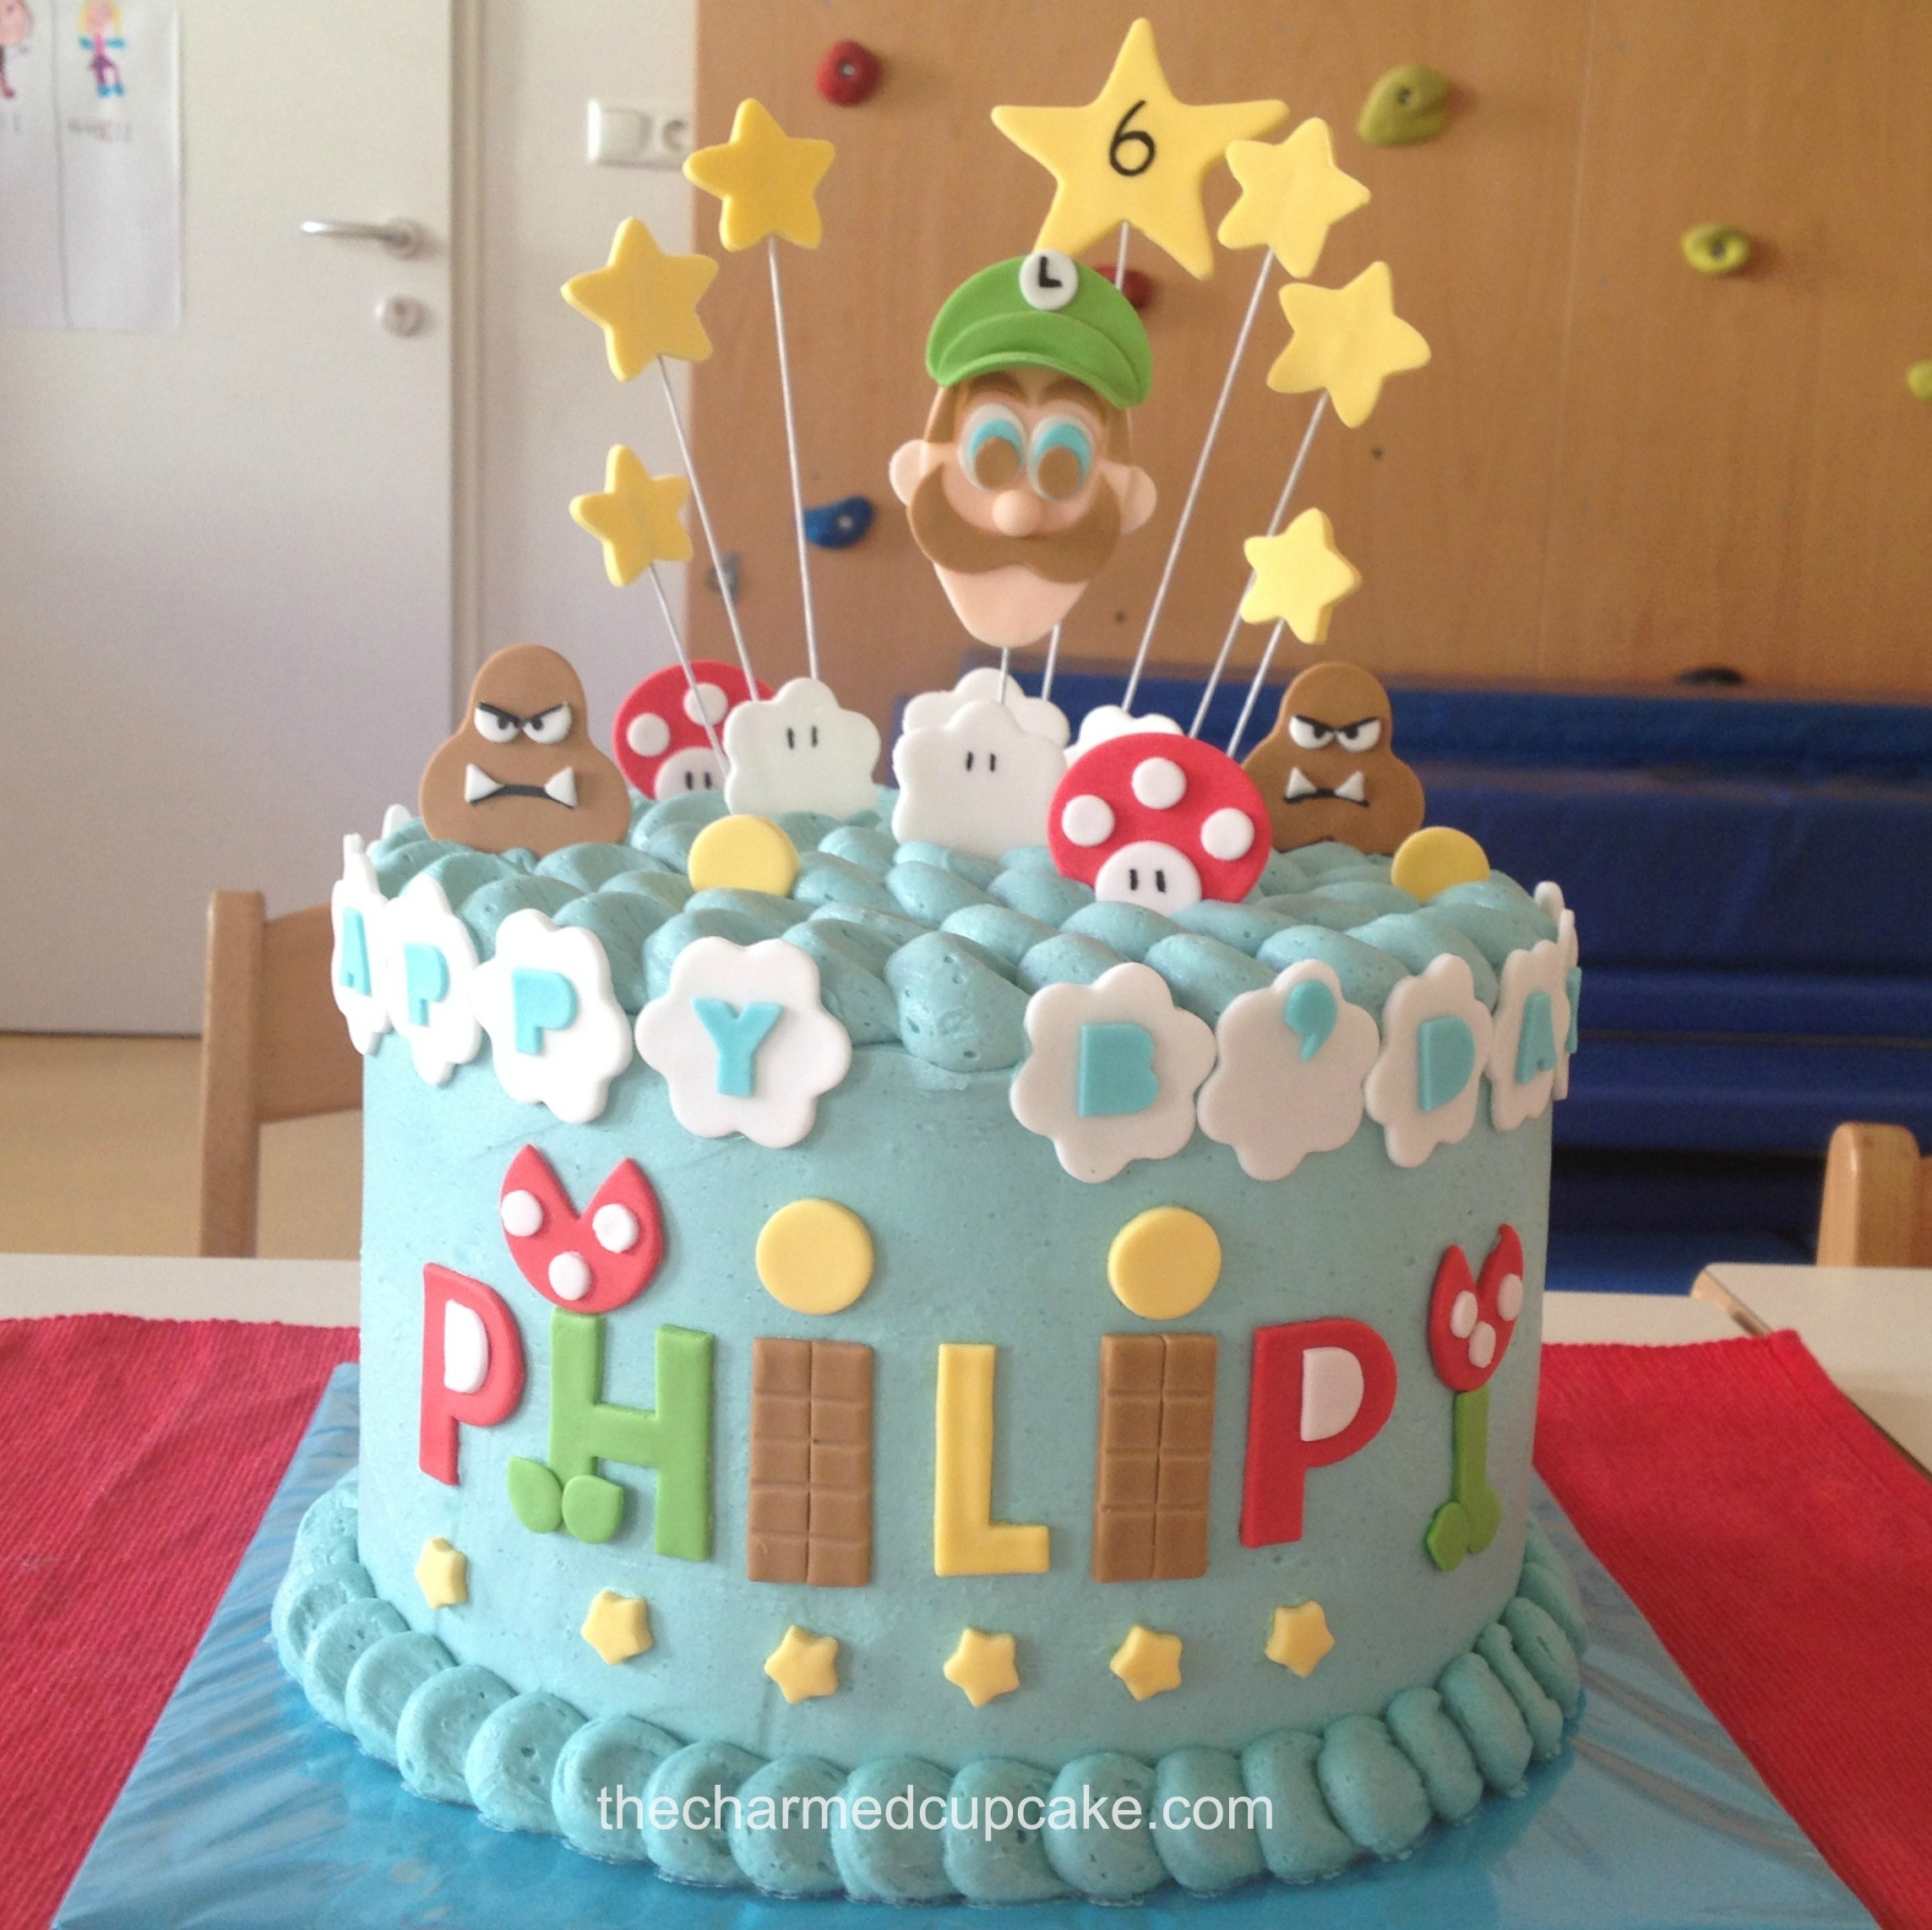 Fabulous Wake Up Luigi The Only Time Plumbers Sleep On The Job Is When Funny Birthday Cards Online Unhofree Goldxyz